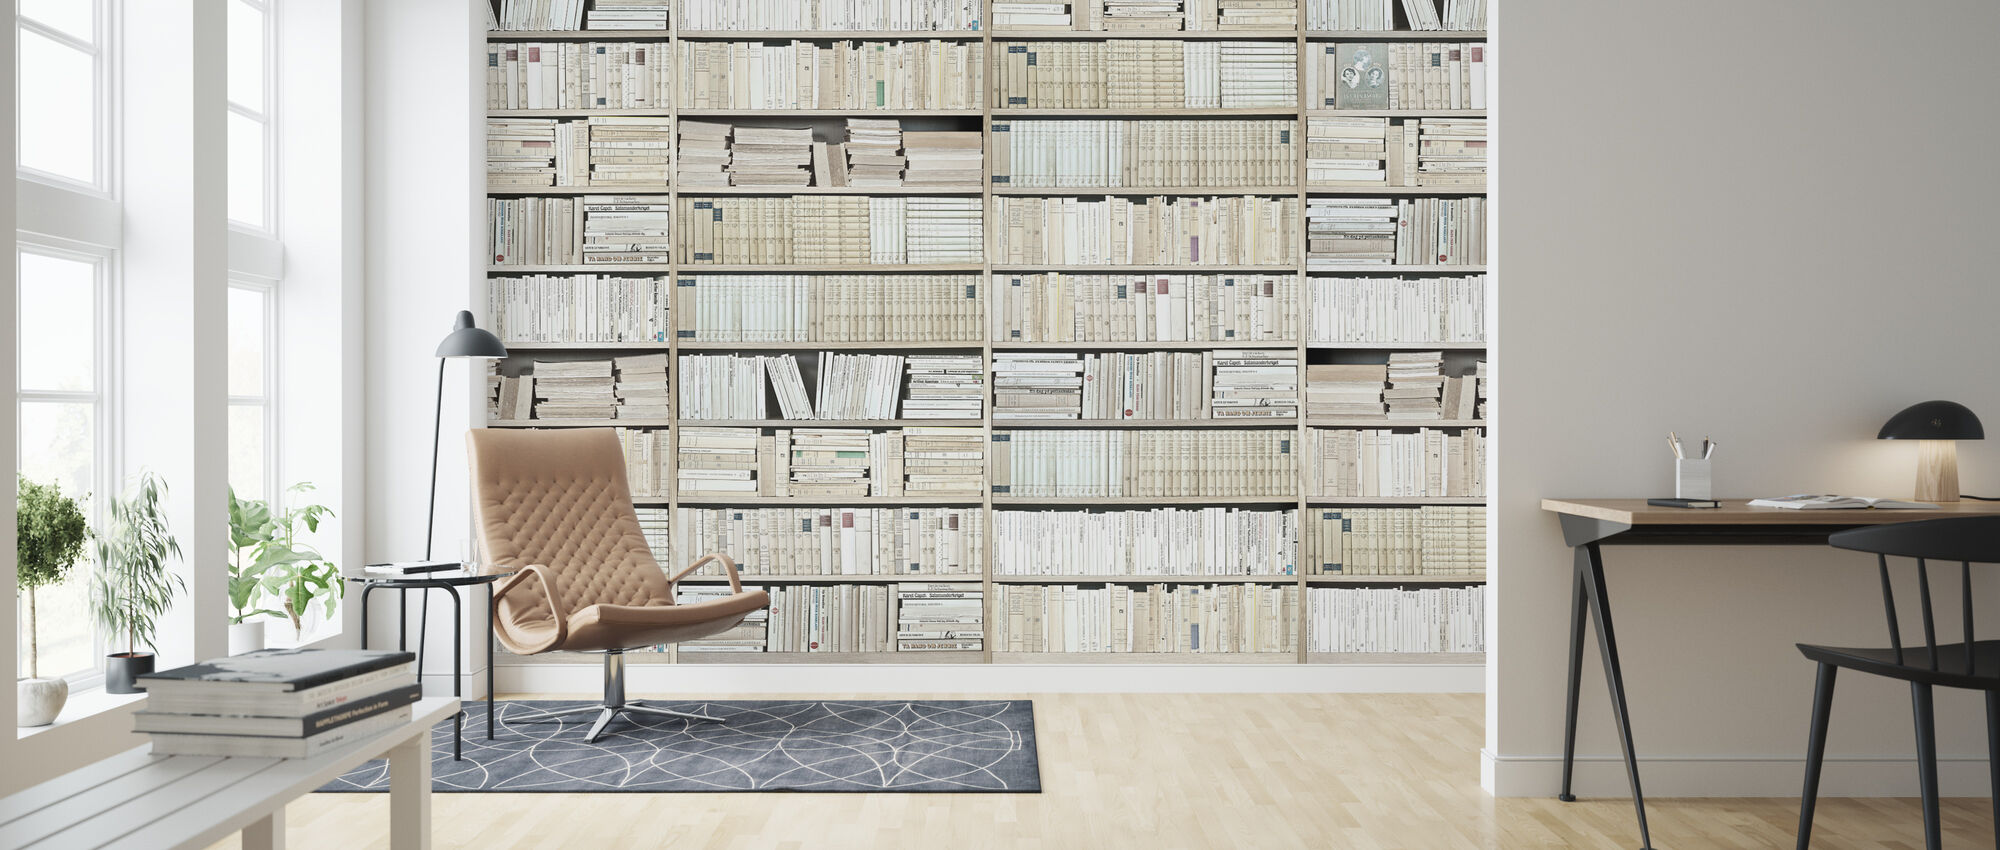 Bookshelf - White - Long - Wallpaper - Living Room